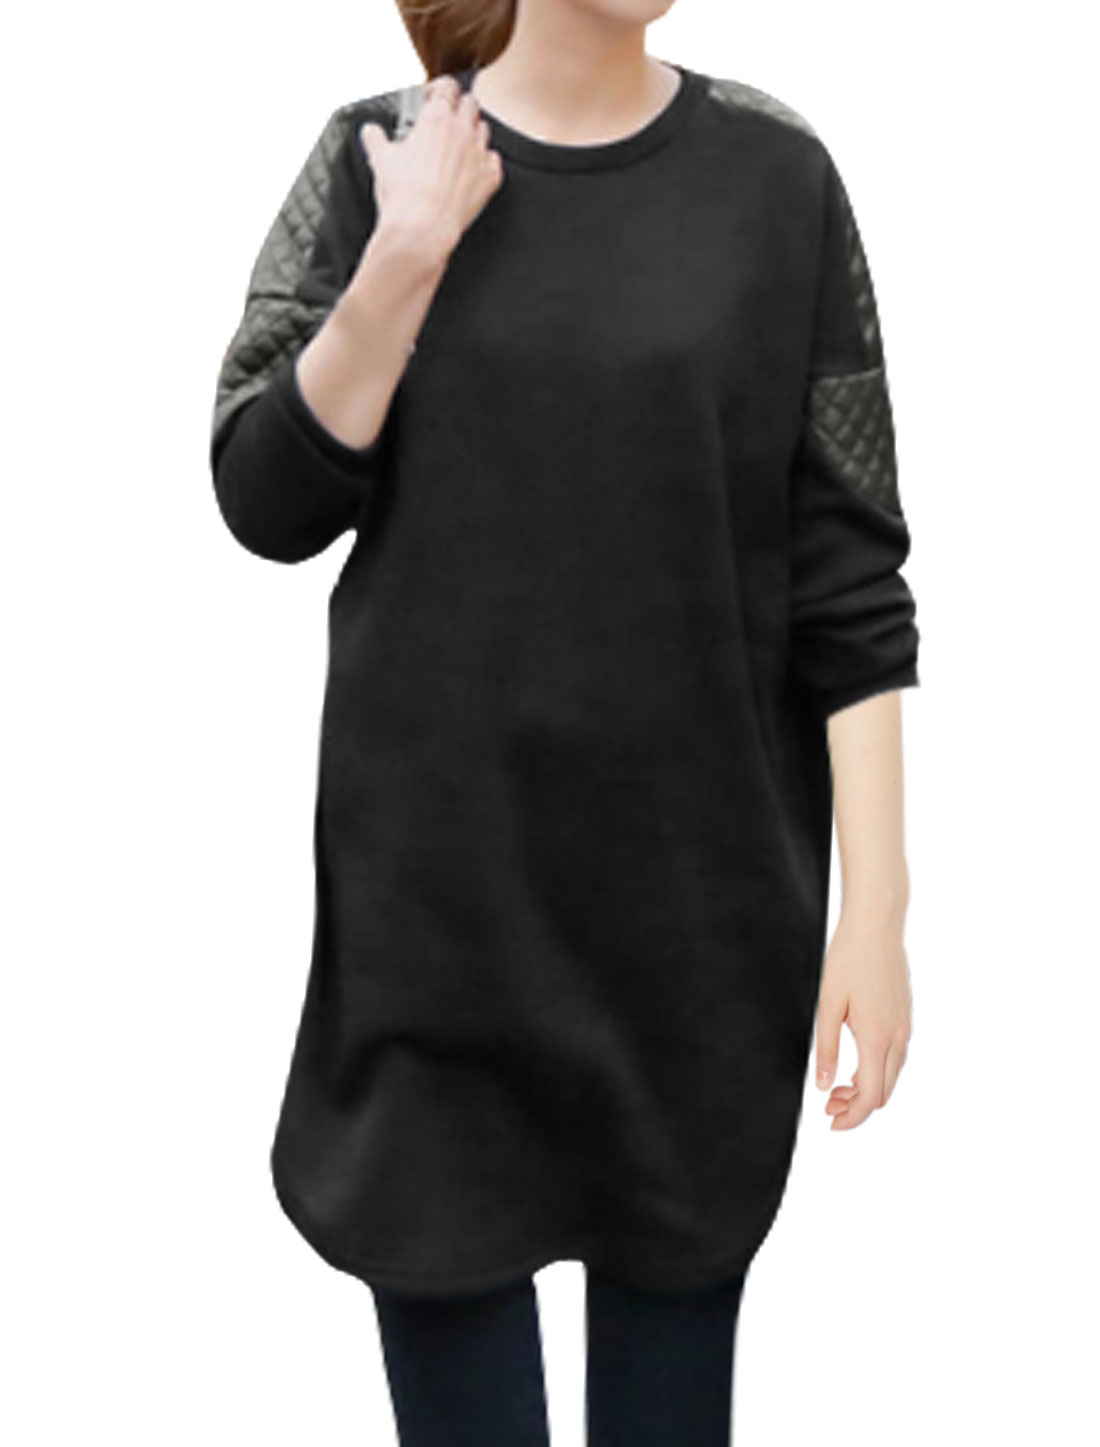 Women Crew Neck Long Sleeves PU Panel Quilted Design Tunic Top Black XS